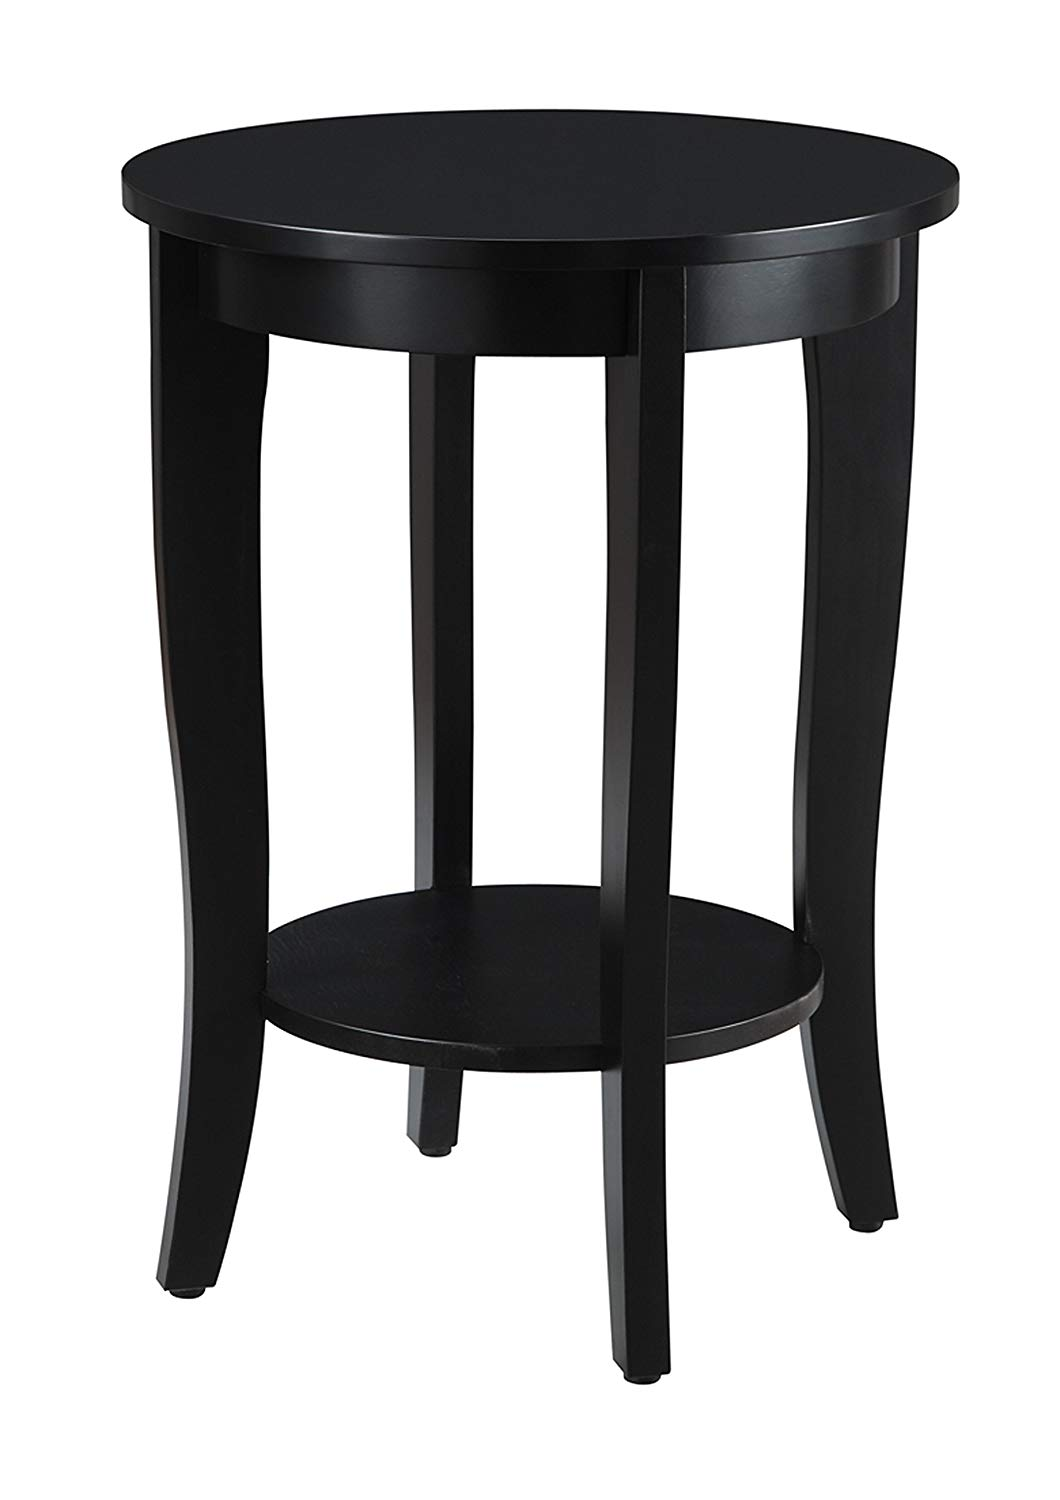 convenience concepts american heritage round table wqxmzl black end home kitchen distressed wood nesting tables small bedside ideas homesense cushions industrial pipe desk legs